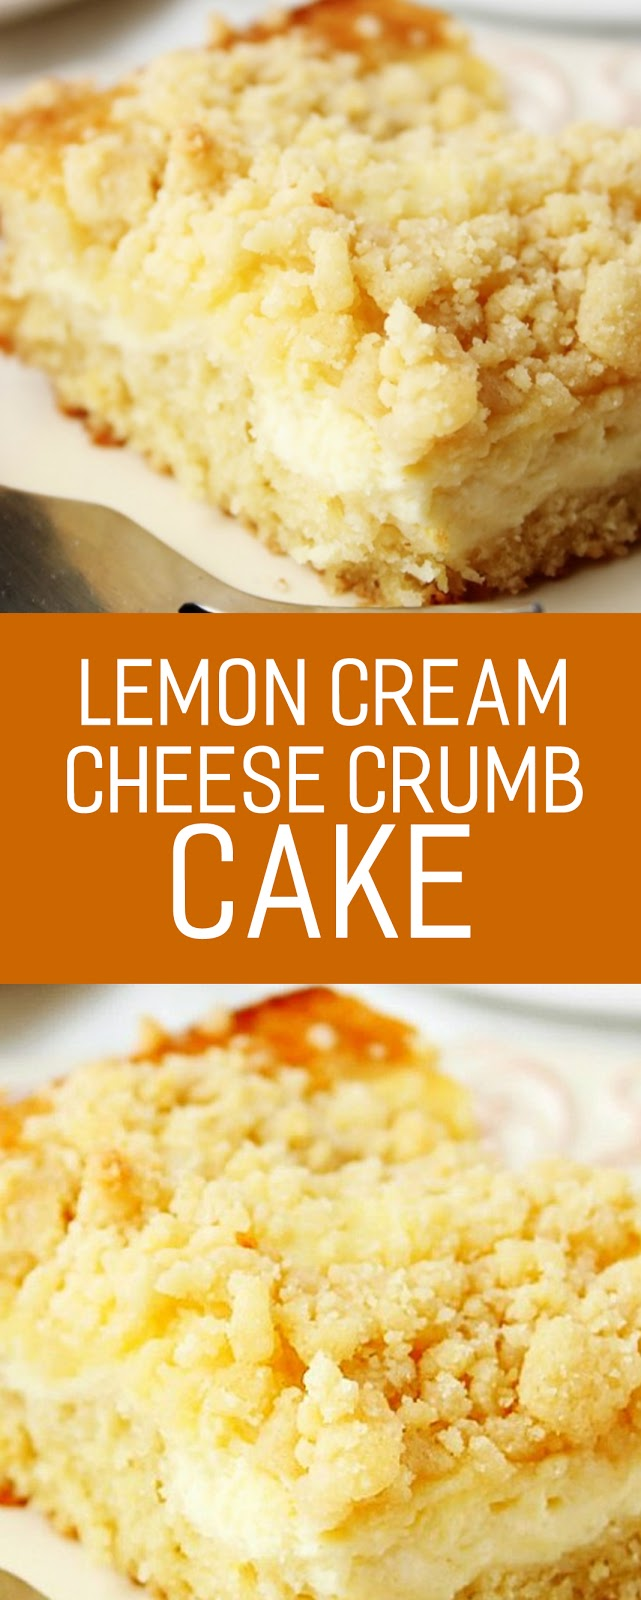 Recipe Lemon Cream Cheese Crumb Cake #cake